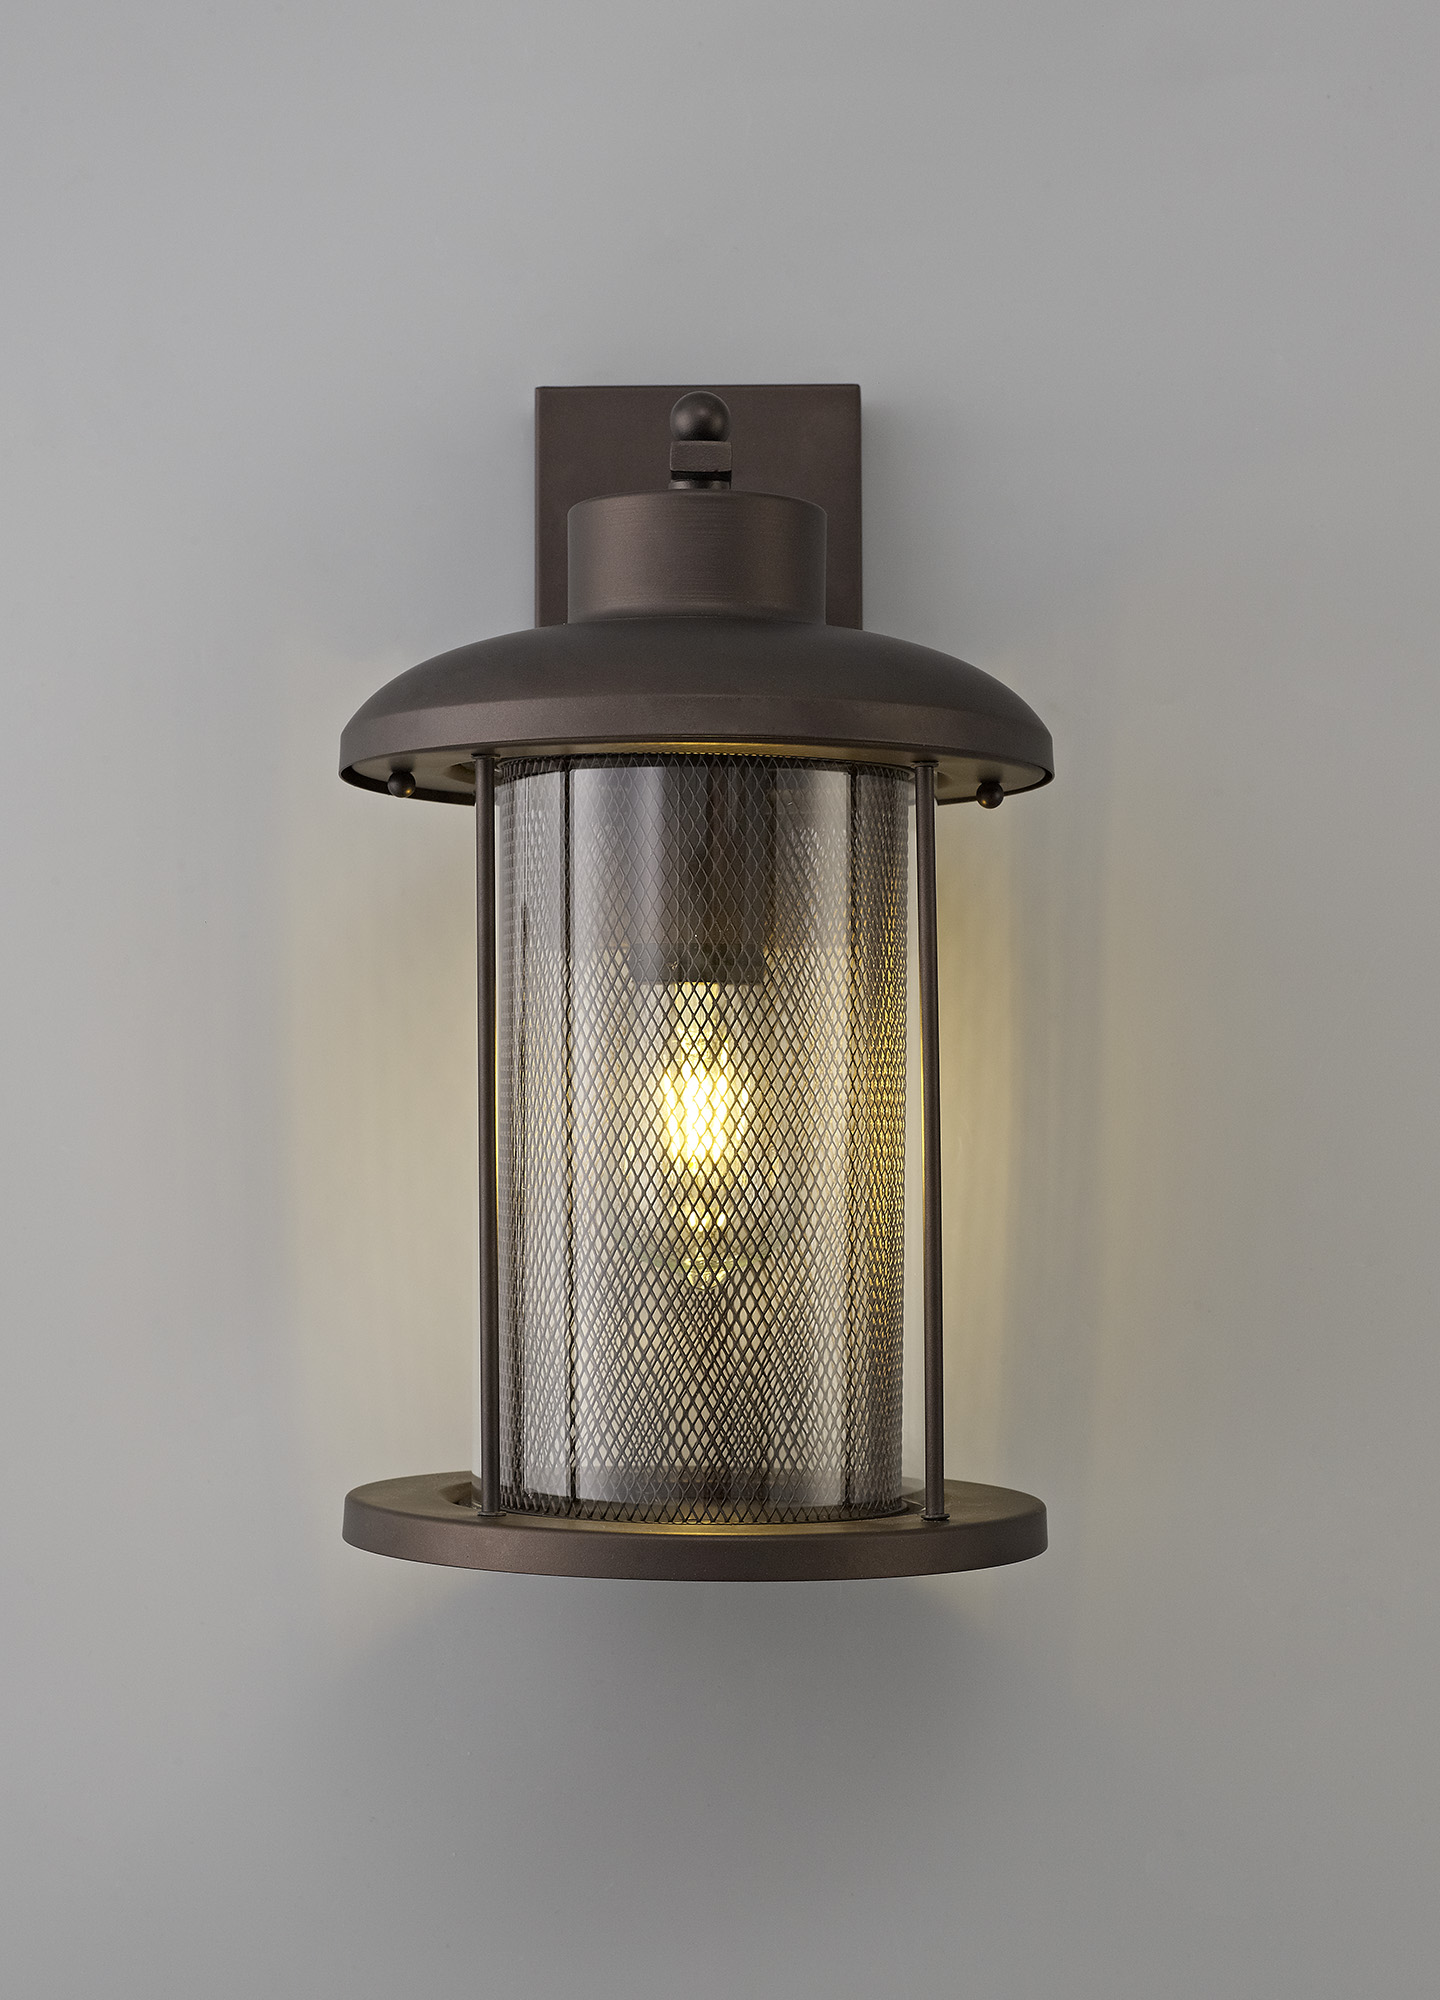 Extra Large Wall Lamp, 1 x E27, Antique Bronze/Clear Glass, IP54, 2yrs Warranty